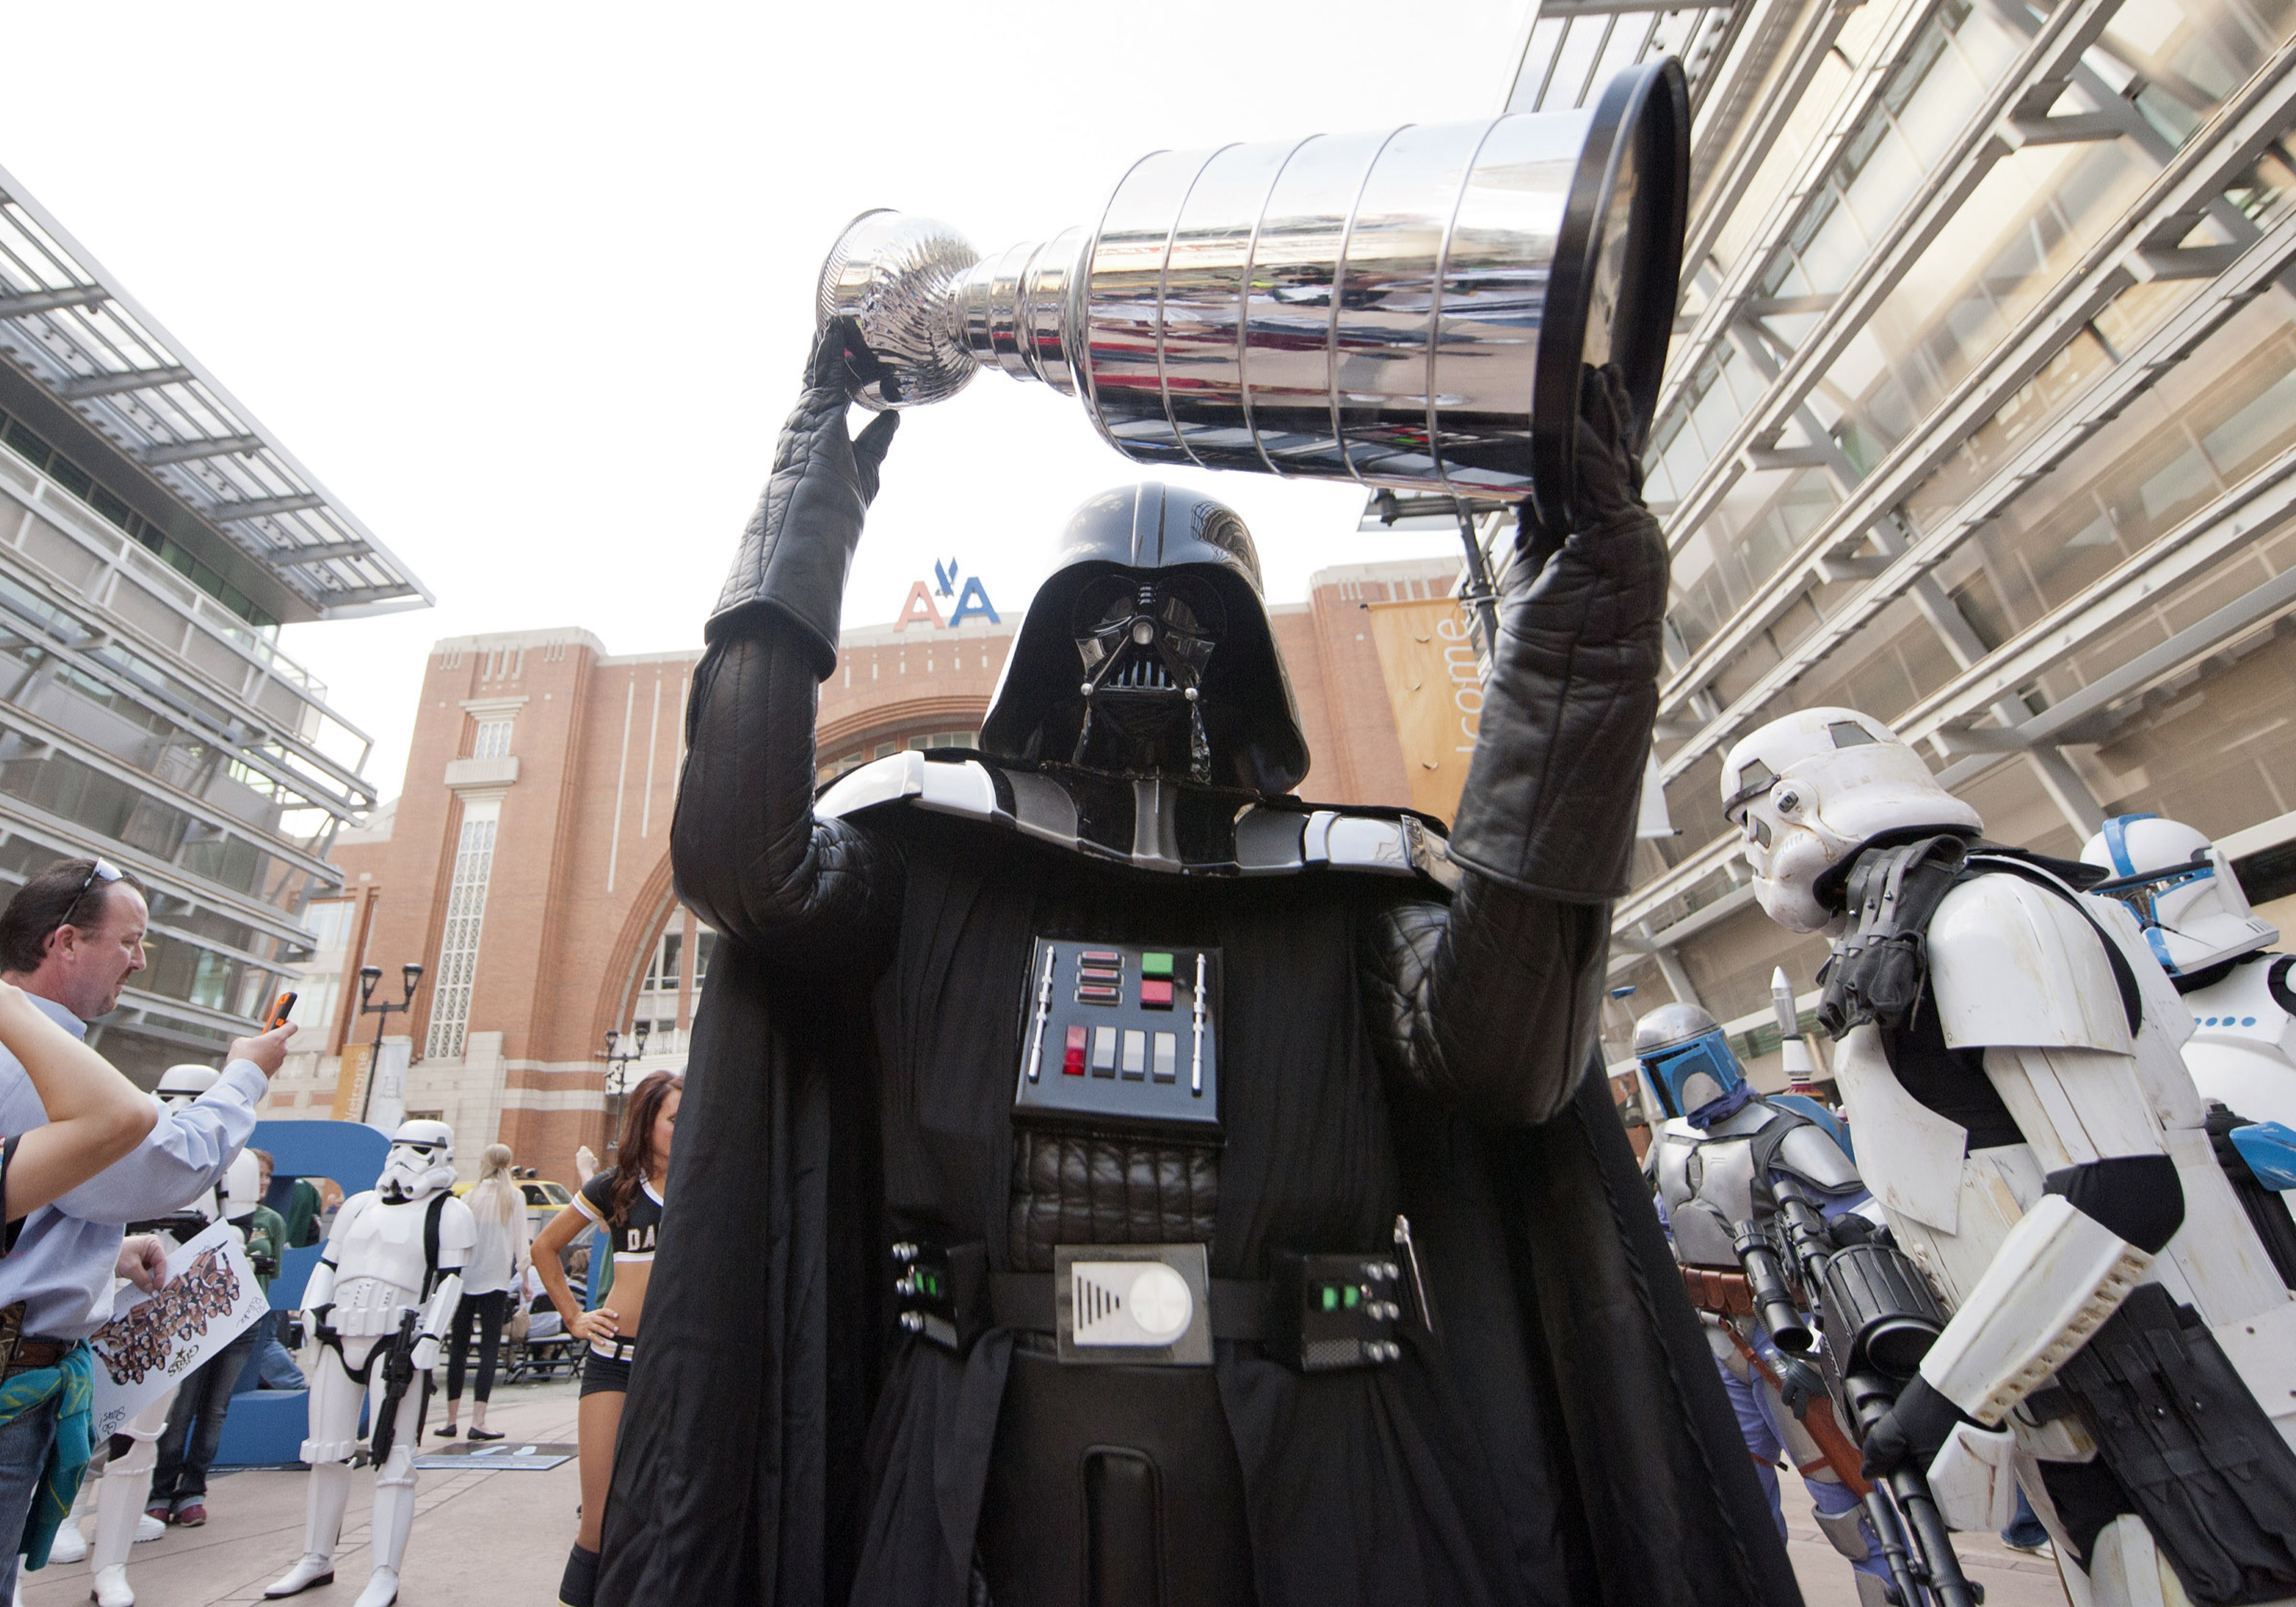 For the 30th consecutive year, the Stanley Cup will fall to the Dark Side.